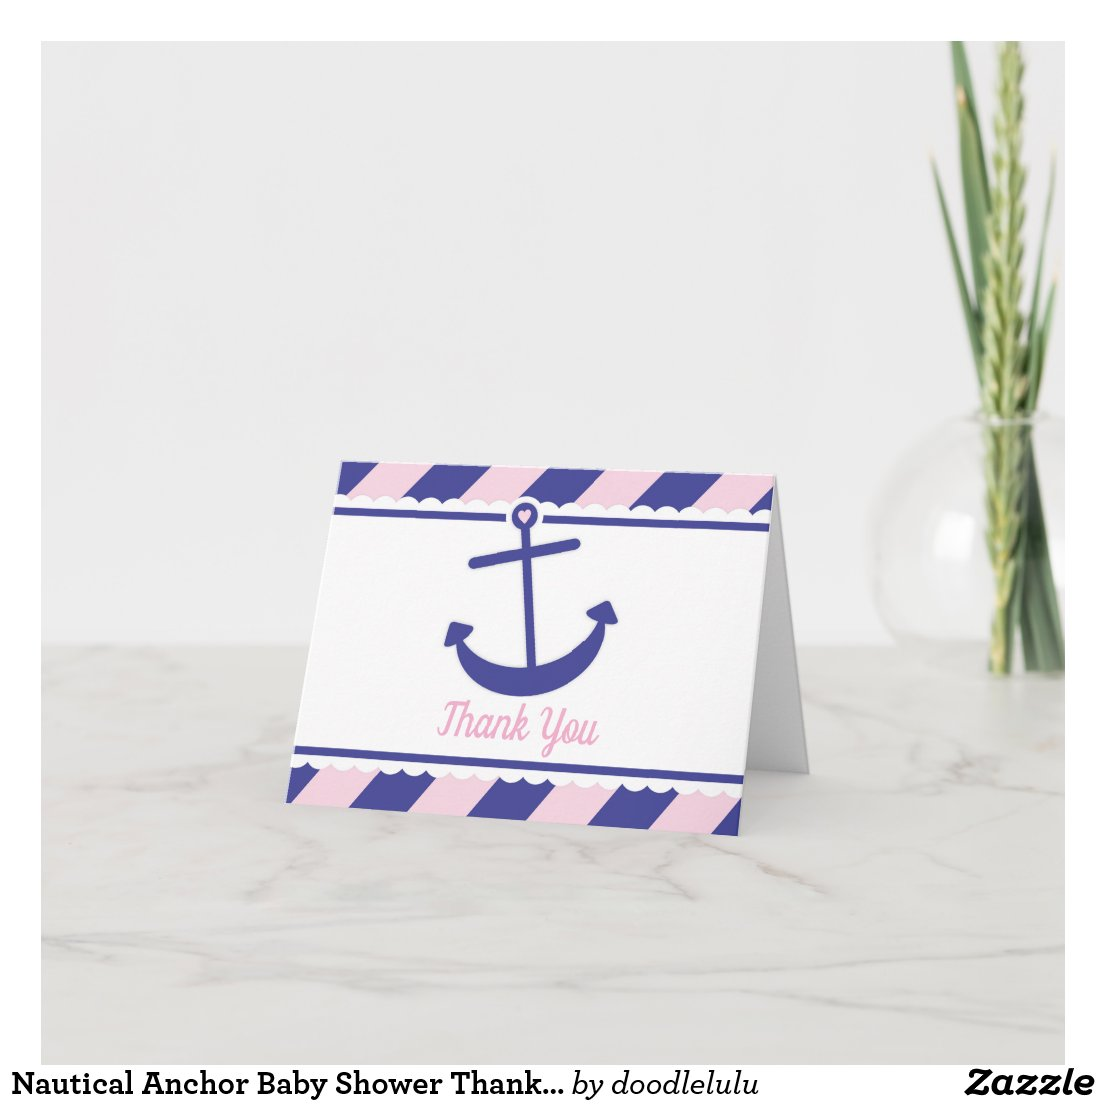 Nautical Anchor Baby Shower Thank You pink navy